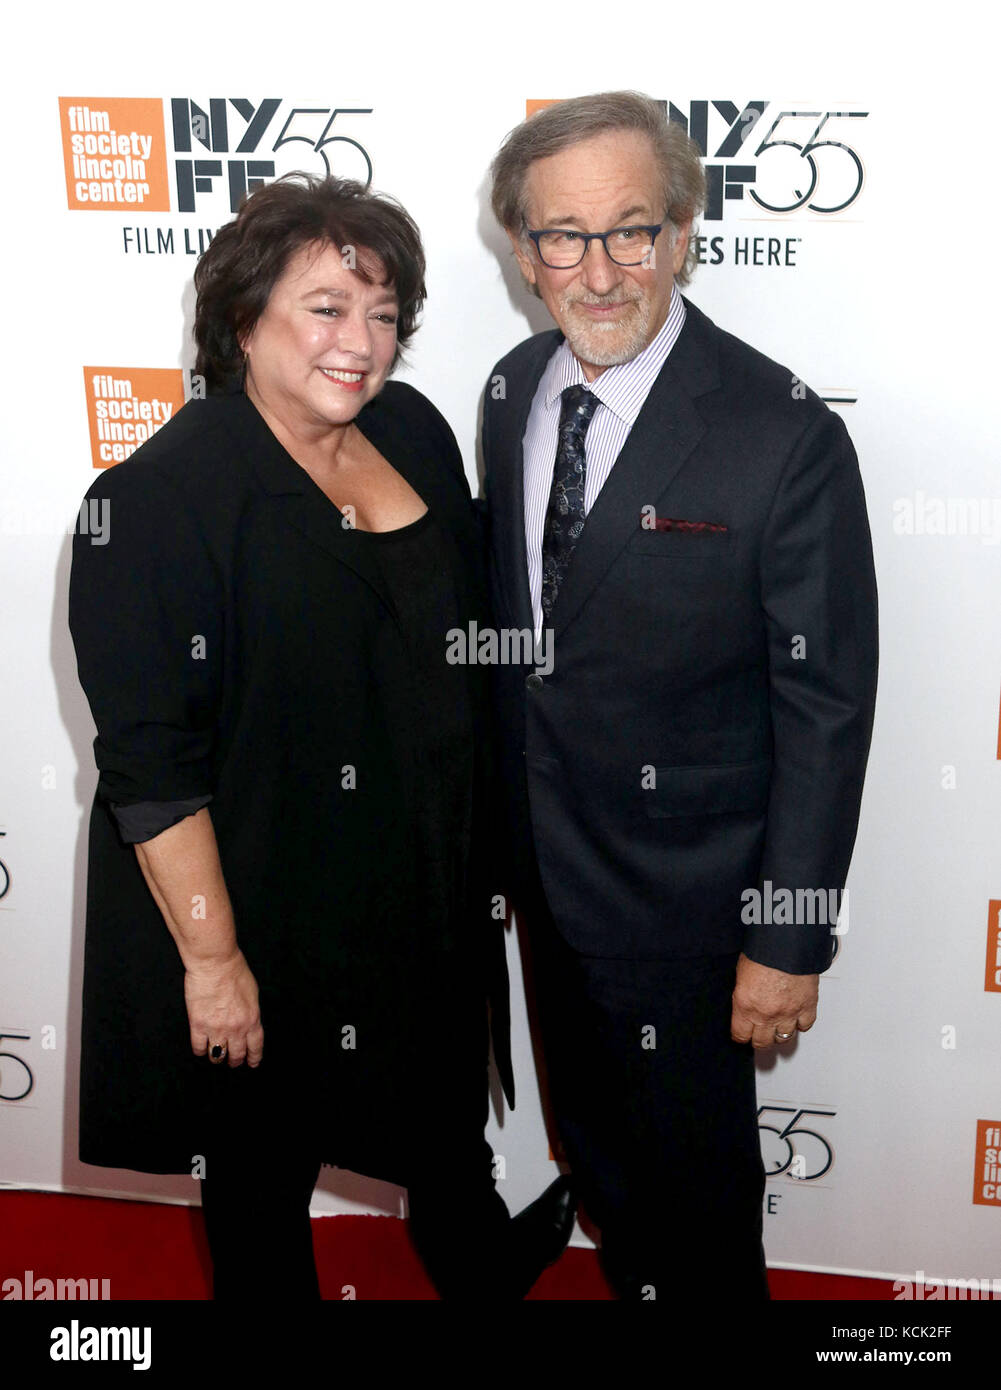 New York, New York, USA. 5th Oct, 2017. Directors SUSAN LACY and STEVEN SPIELBERG attend the 55th New York Film - Stock Image